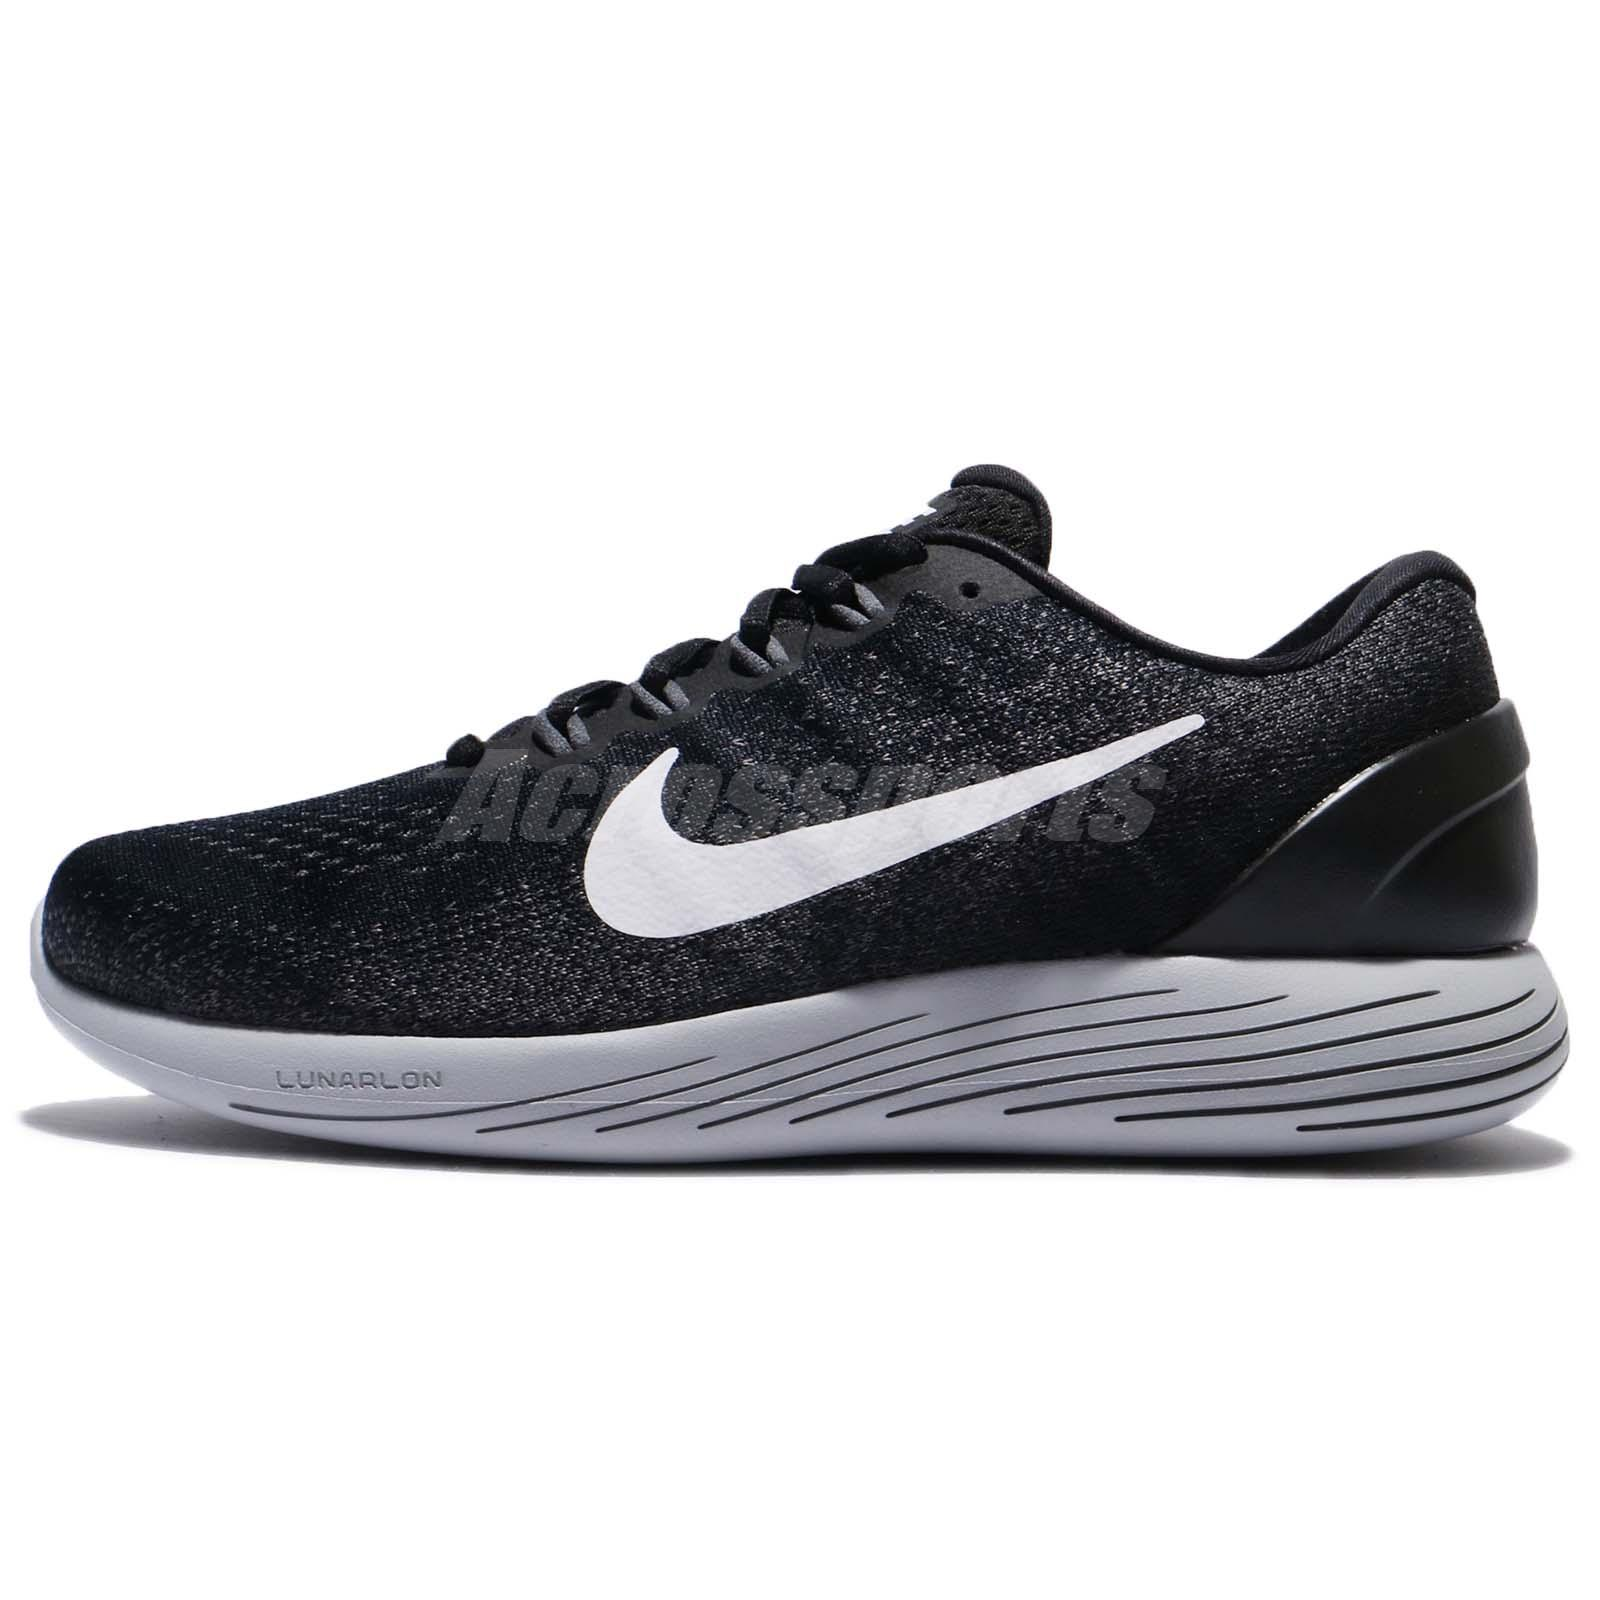 85725d270ef Nike Lunarglide 9 IX Black White Grey Men Running Shoes Trainers 904715-001